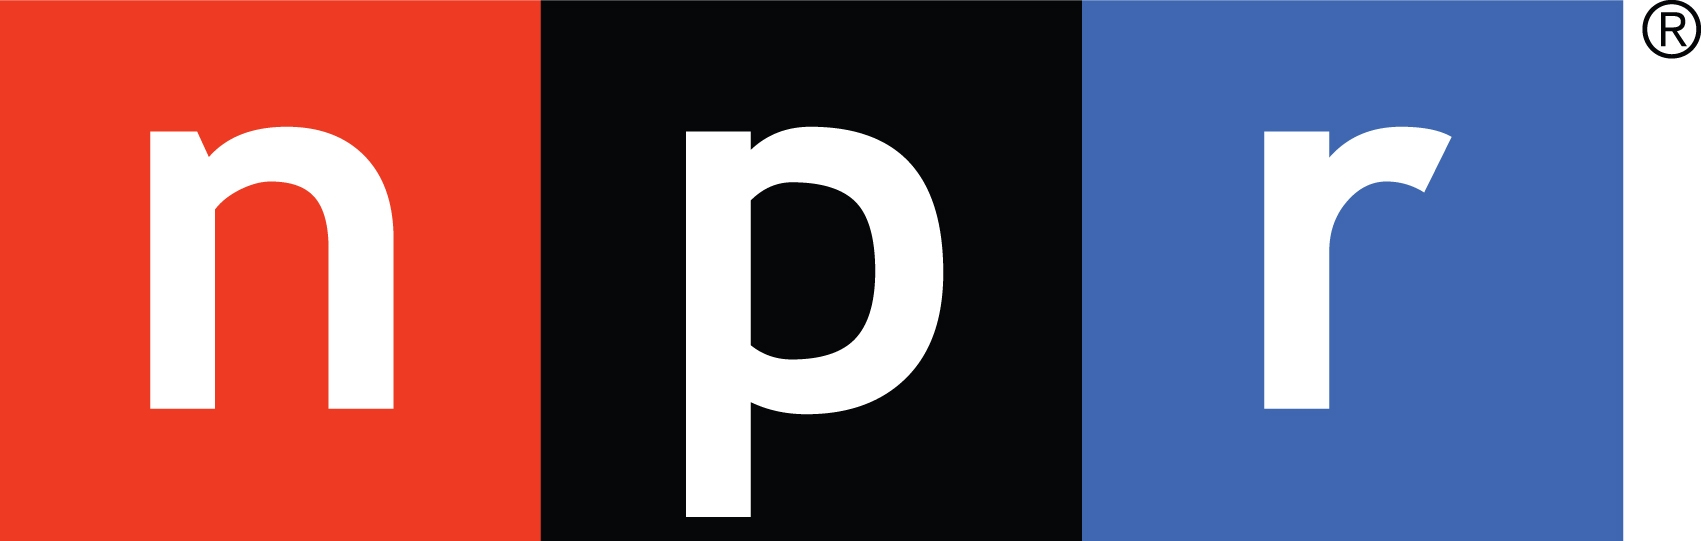 Apple Is Adding NPR To iTunes Radio